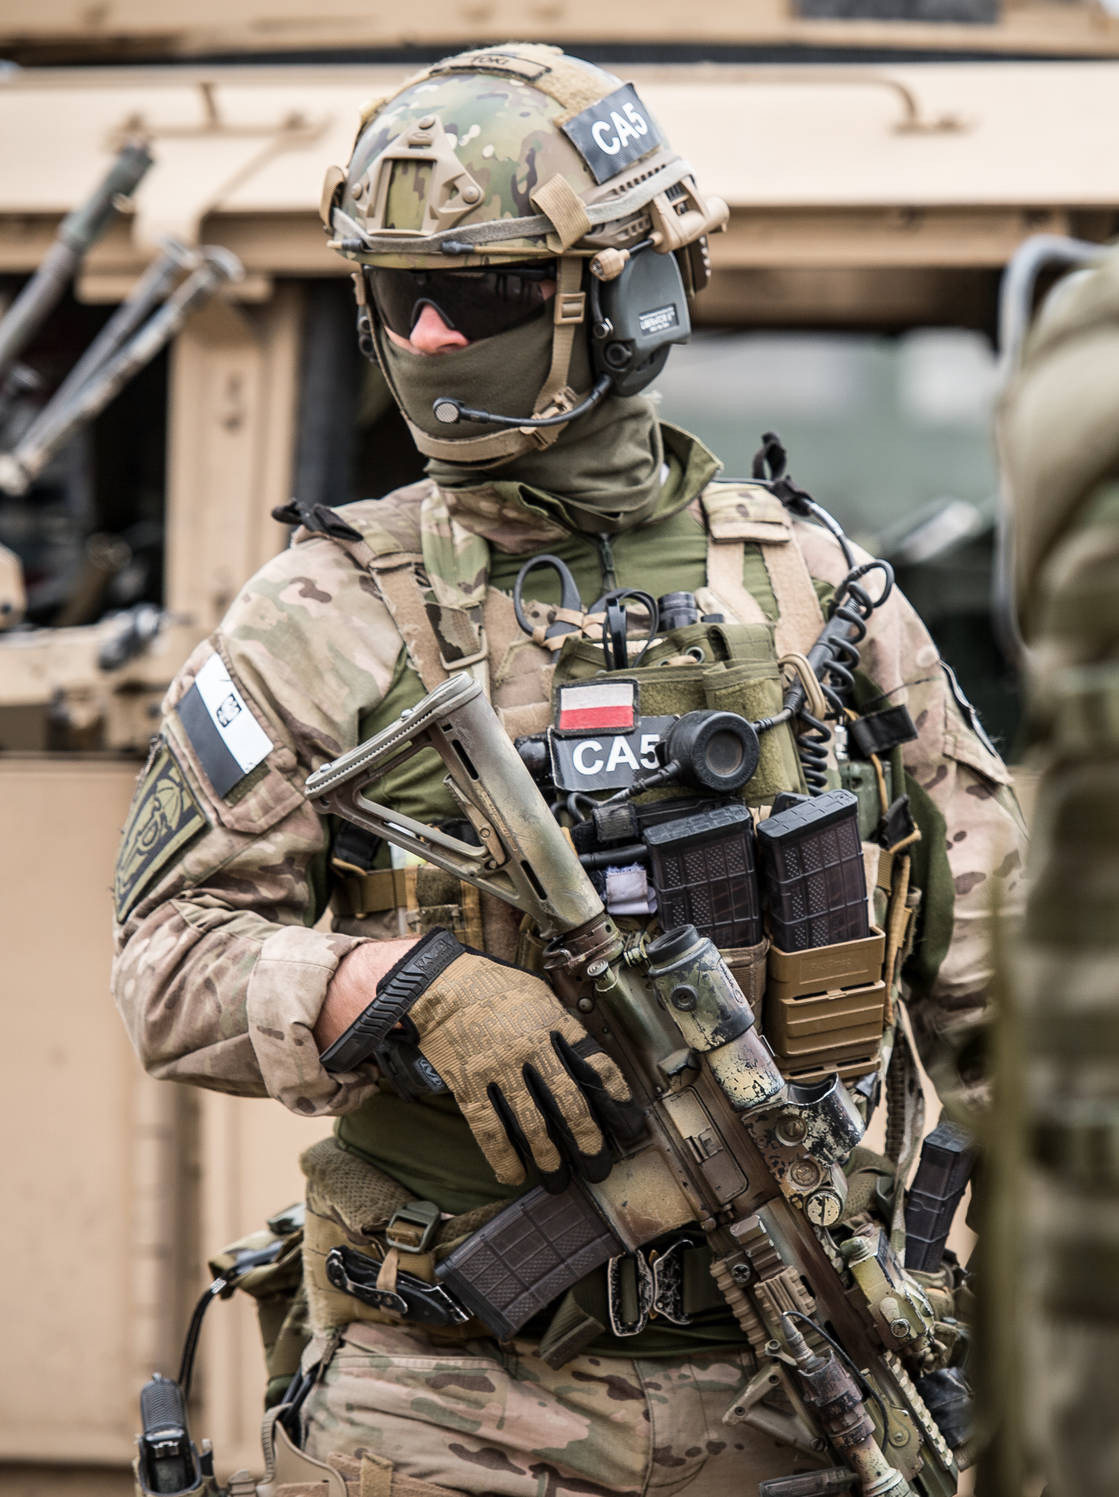 Ukrainian Spetnaz's Weapons and Gear May Show an American